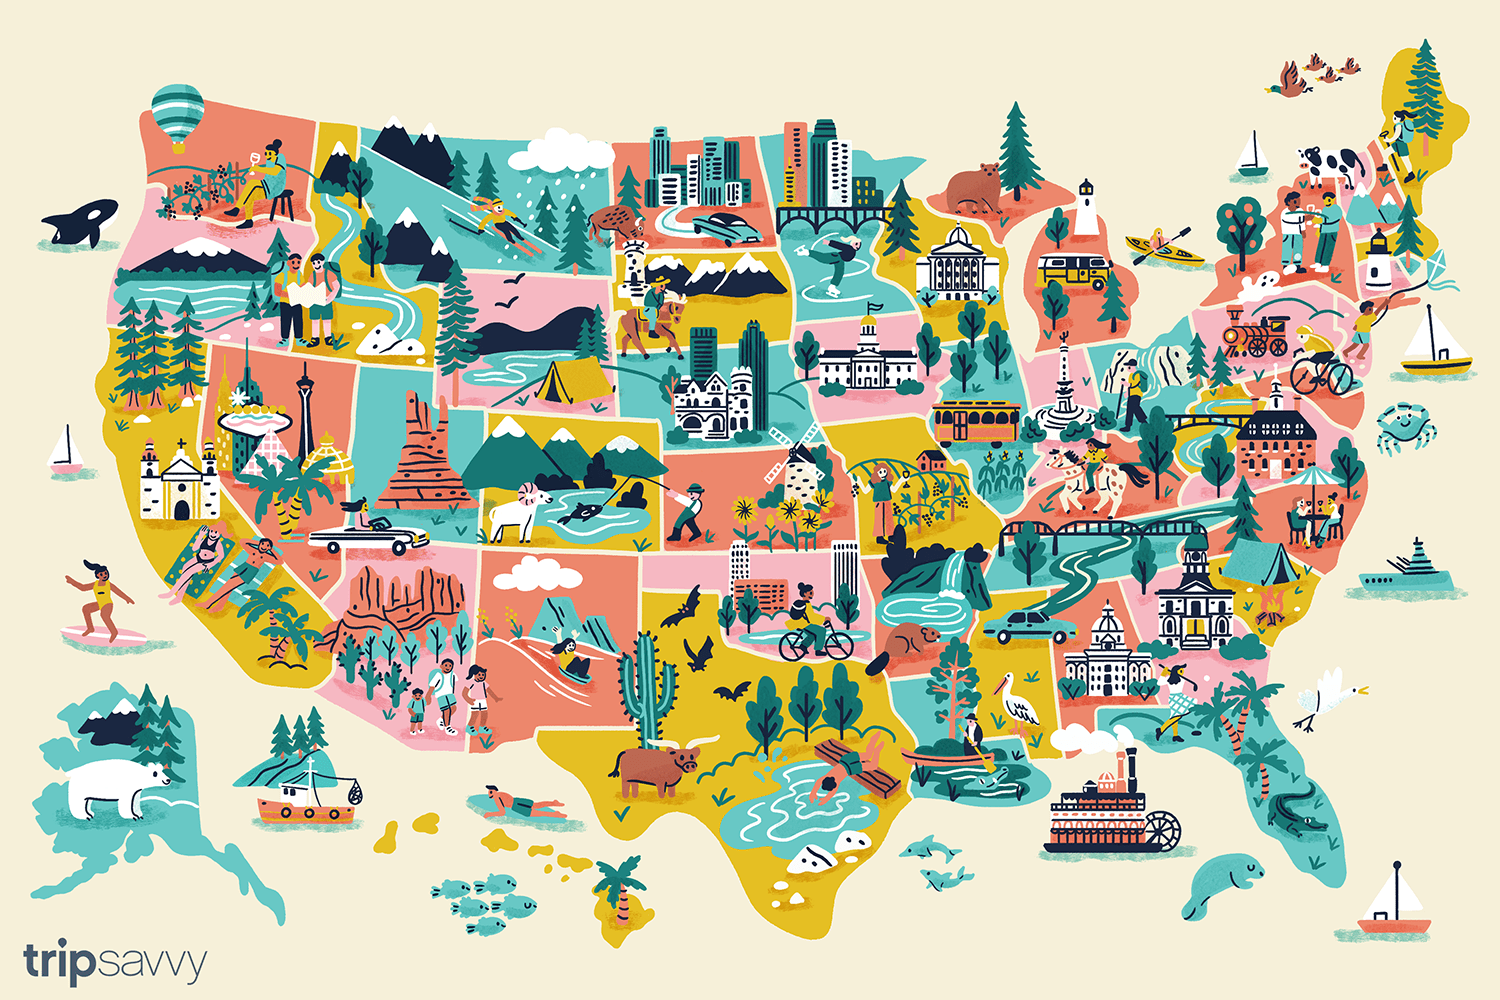 50 States, 50 Staycations: The Best Staycation in Every State